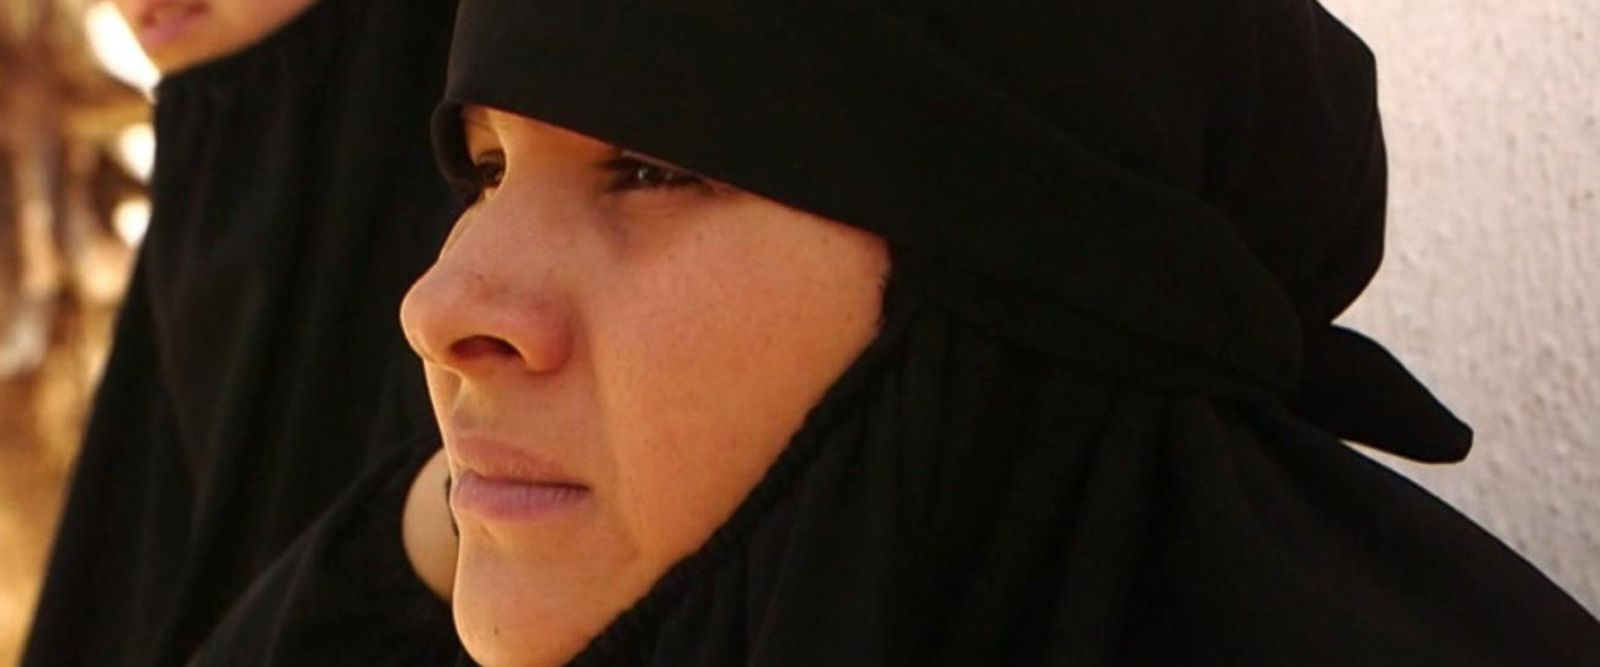 VIDEO: ISIS brides and the countless families caught in Syria's civil war: Part 2